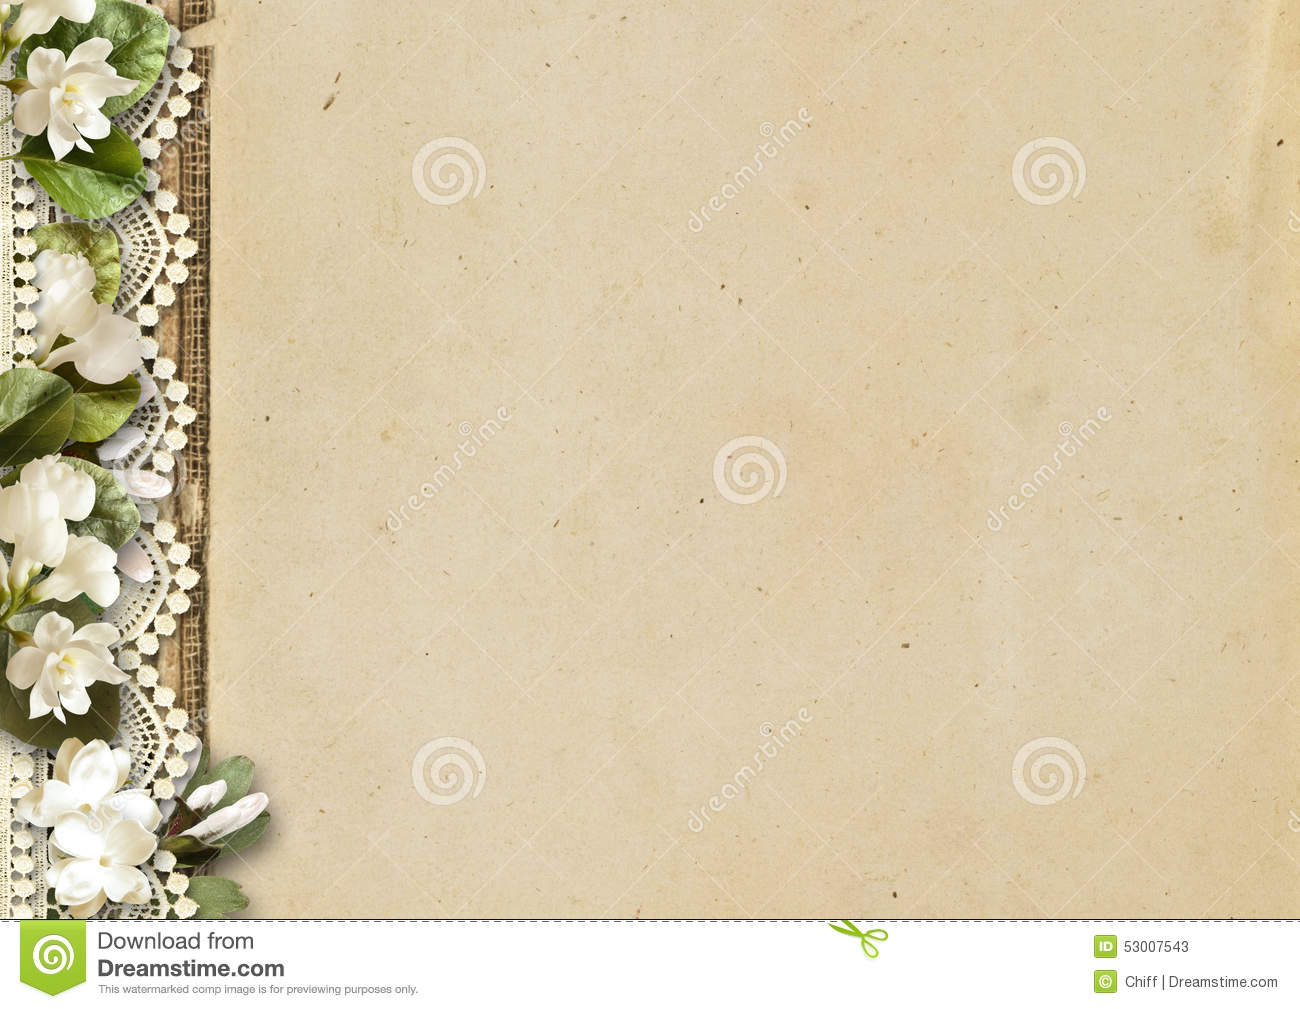 Book Cover Page Background ~ Vintage background with flowers and lace tender blossom